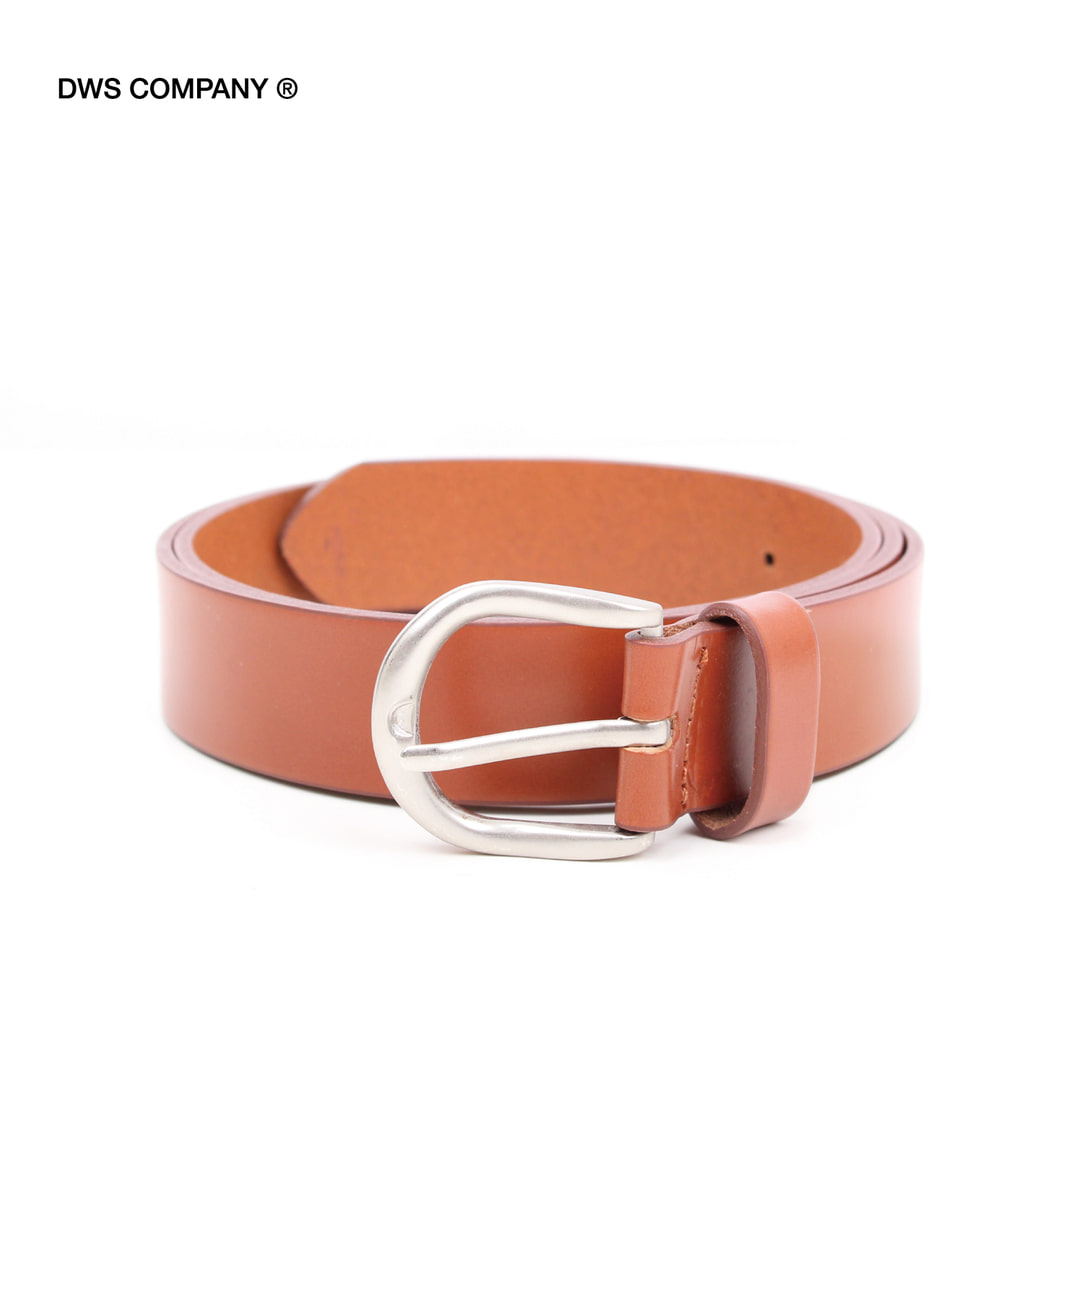 DWS BASIC LEATHER BELT(BROWN)